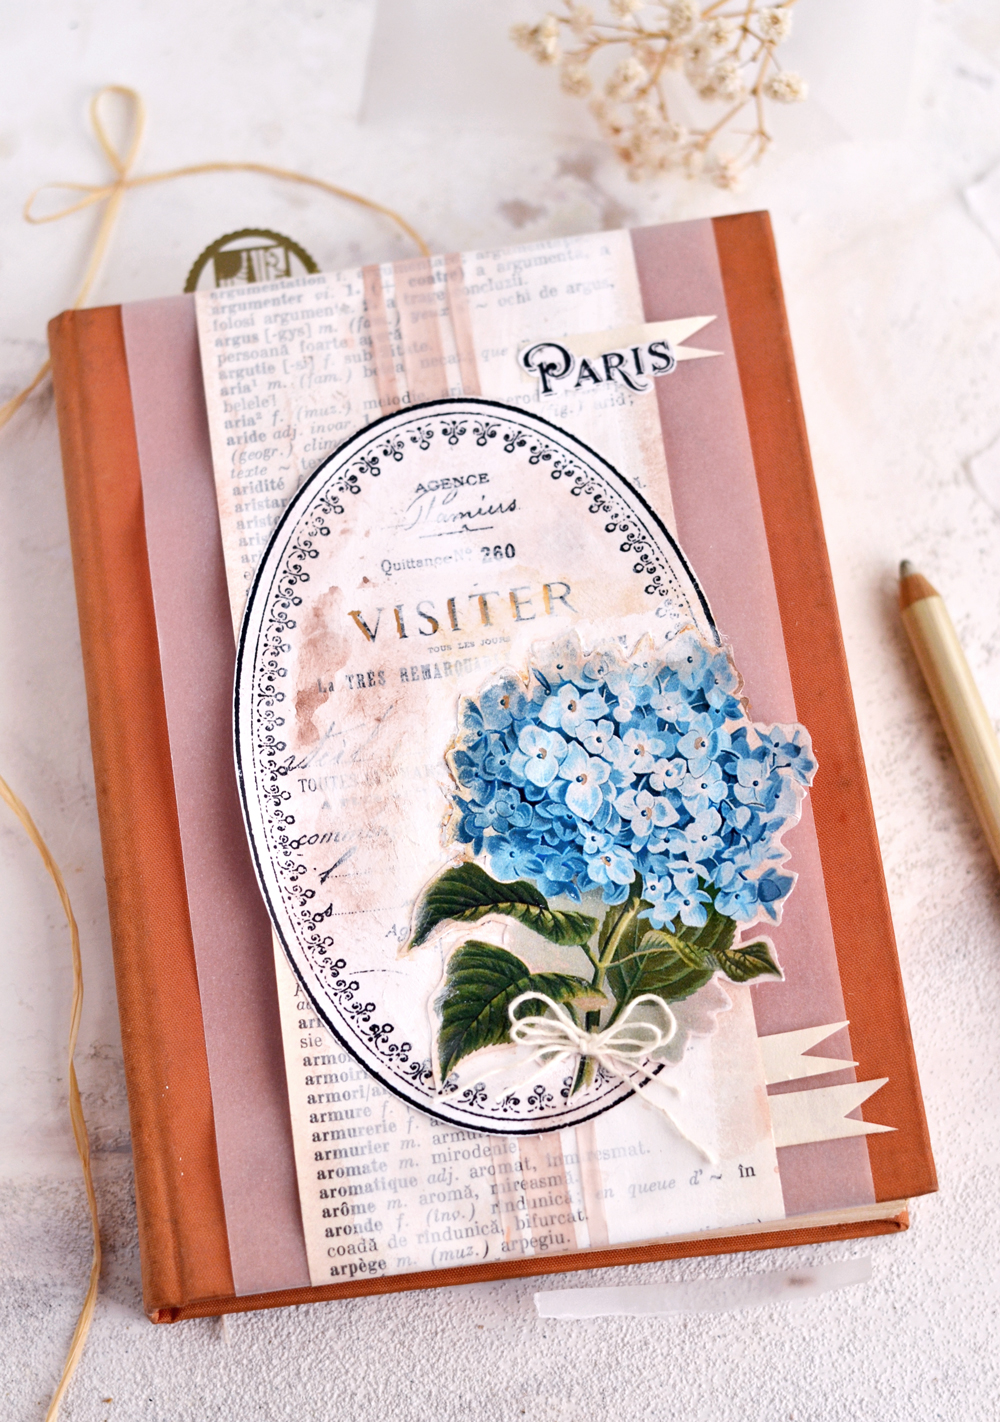 DIY Vintage French Art Journal Cover - learn how to easily make this DIY project using supplies that you might have around and an old dictionary! #DIY #vintage #freeprintable #hydrangea #artjournal #junkjournal